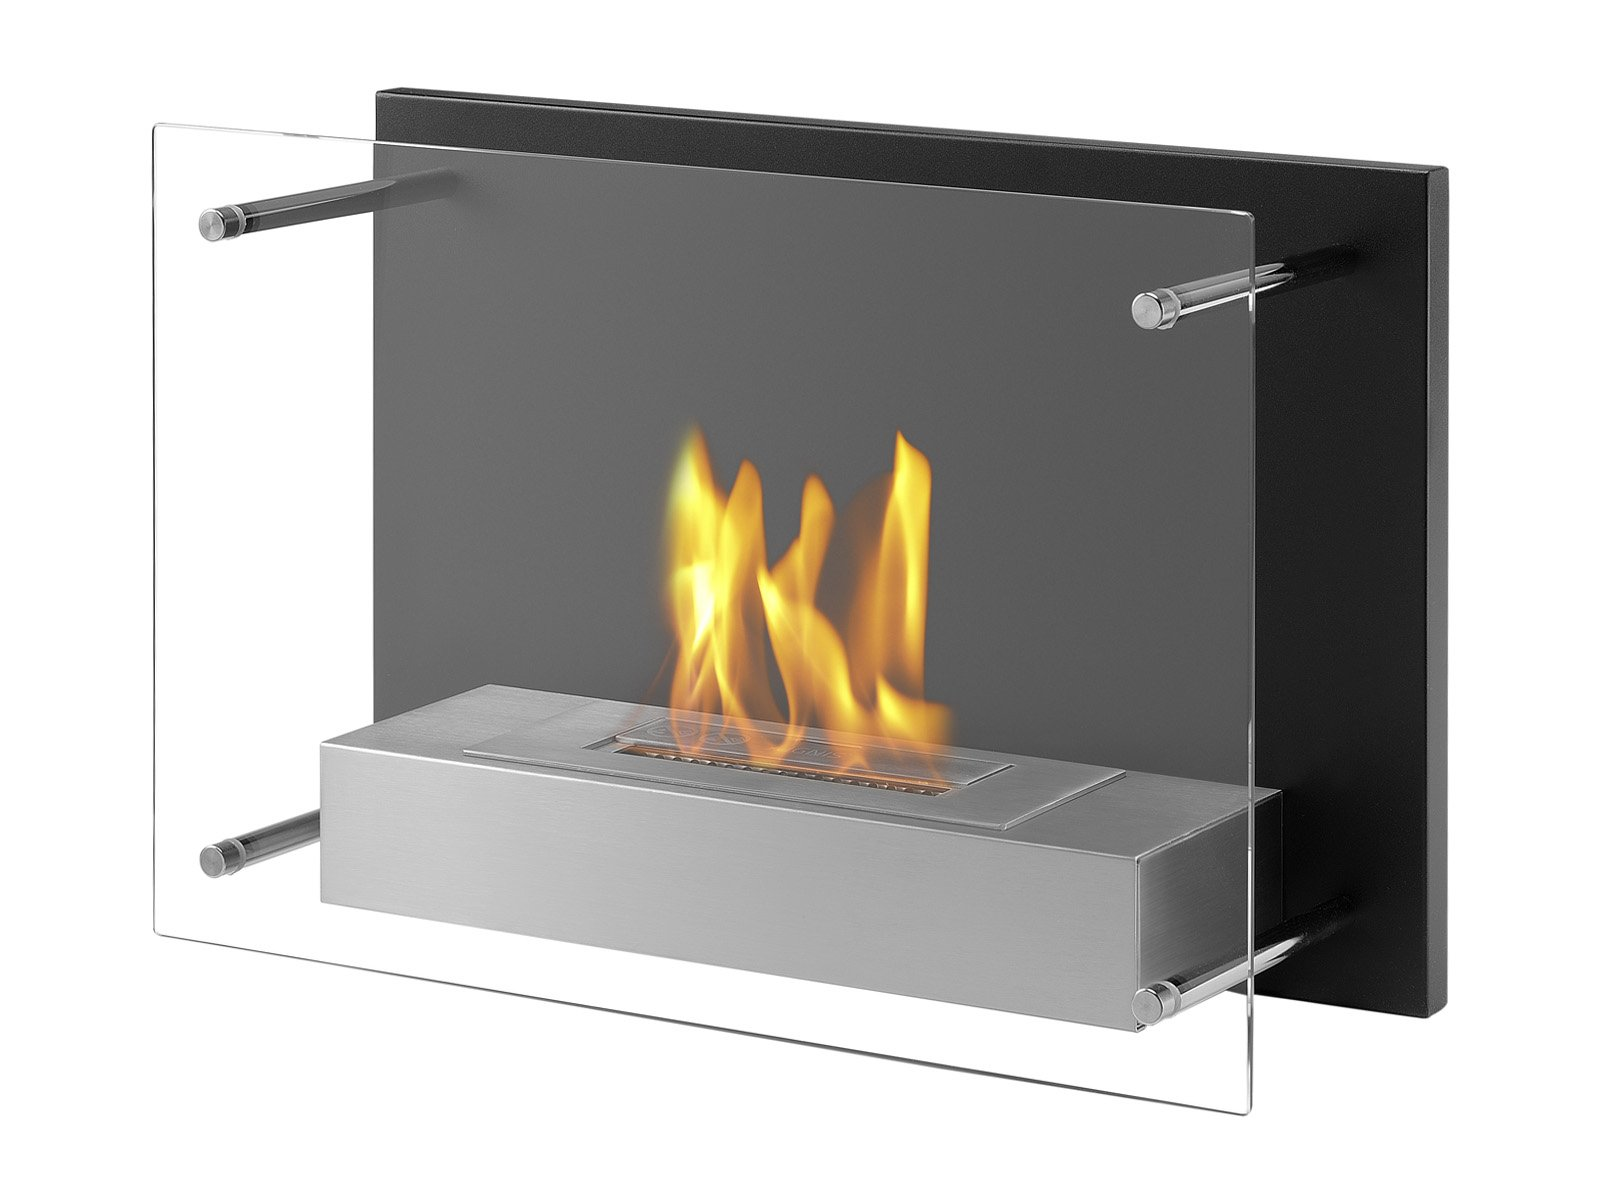 Ignis Senti Ventless Wall Mounted Bio Ethanol Fireplace by Ignis